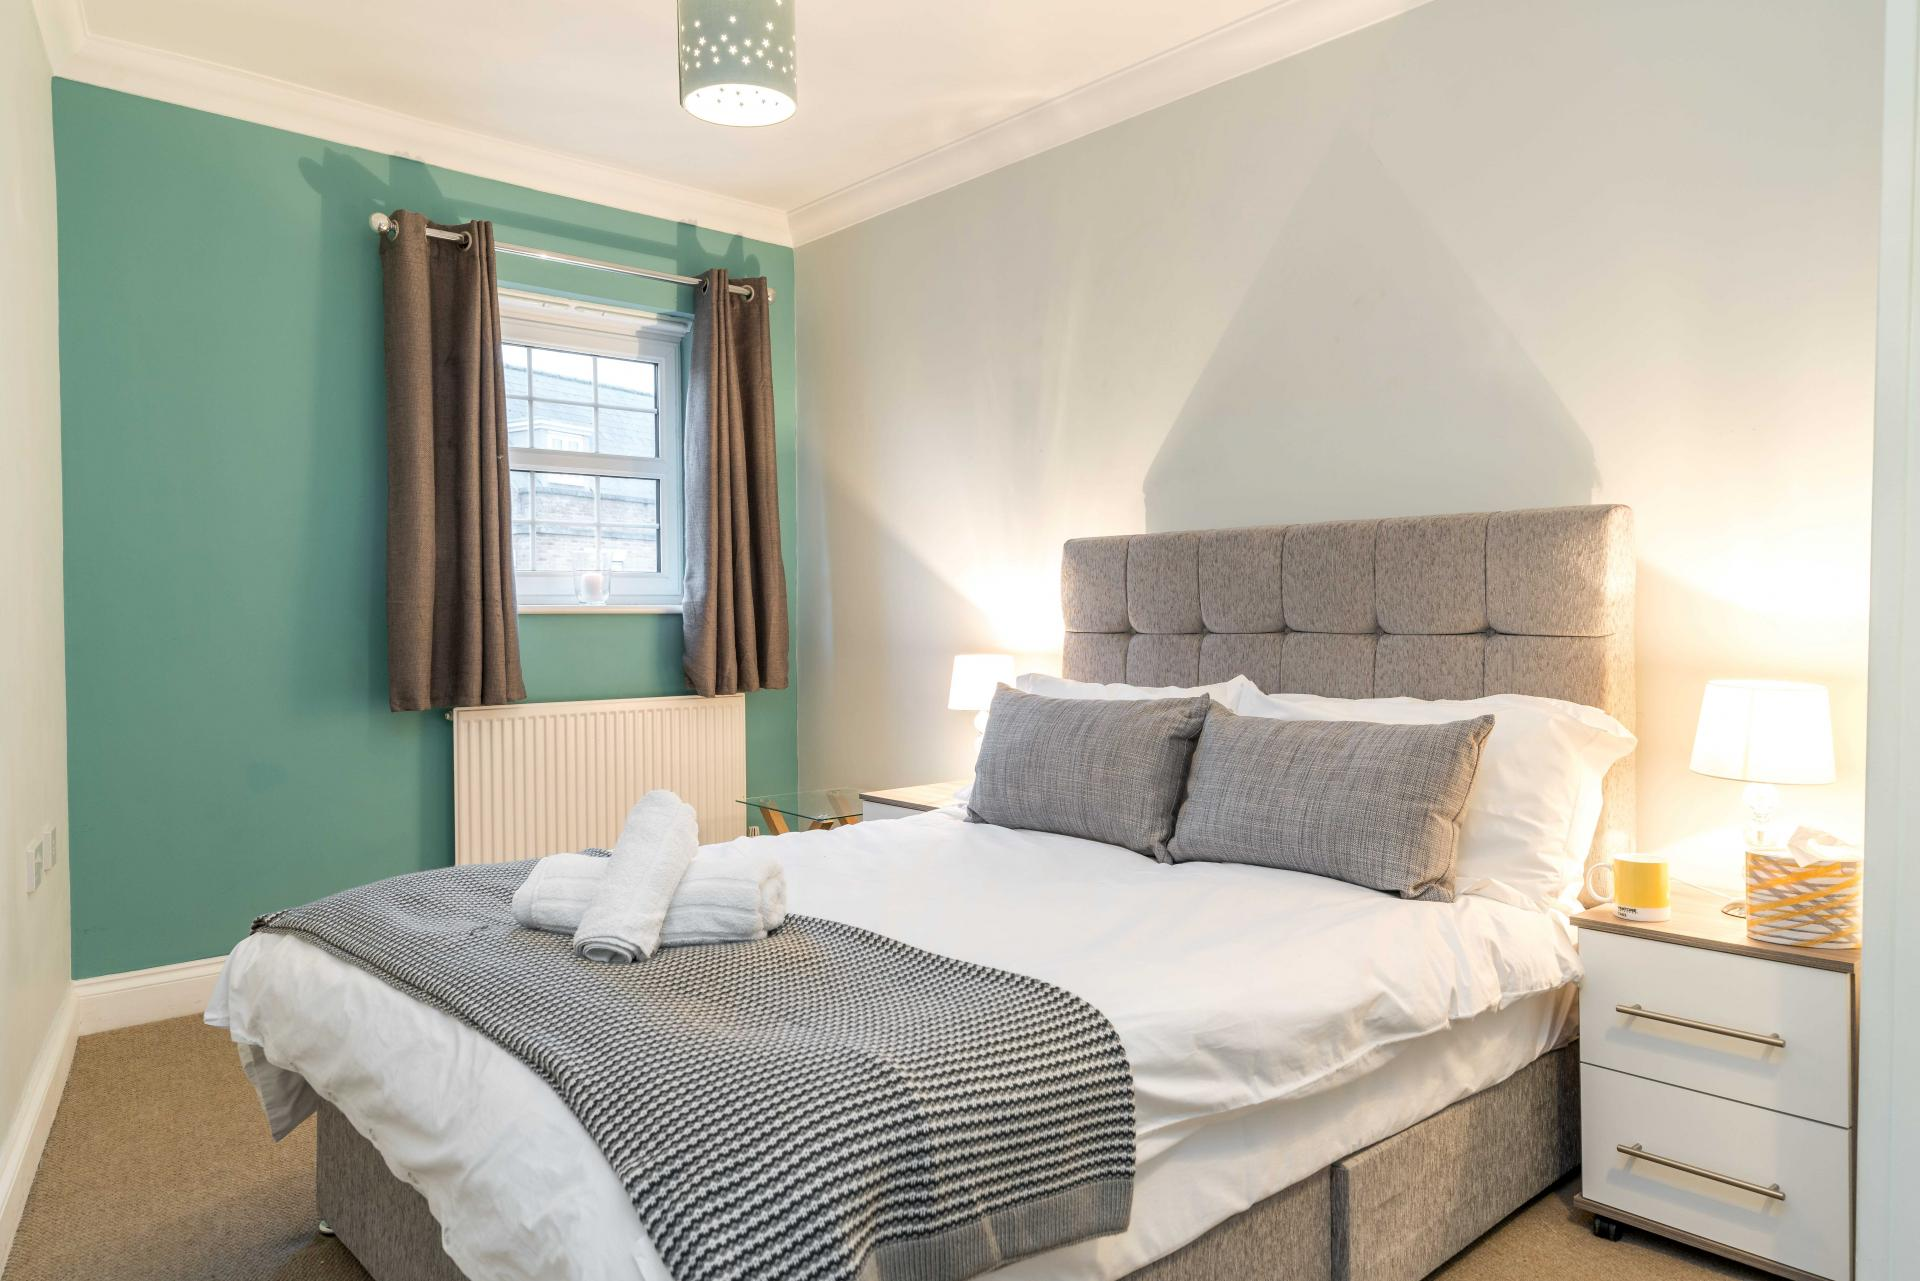 Bedroom 1 at Stowfield House